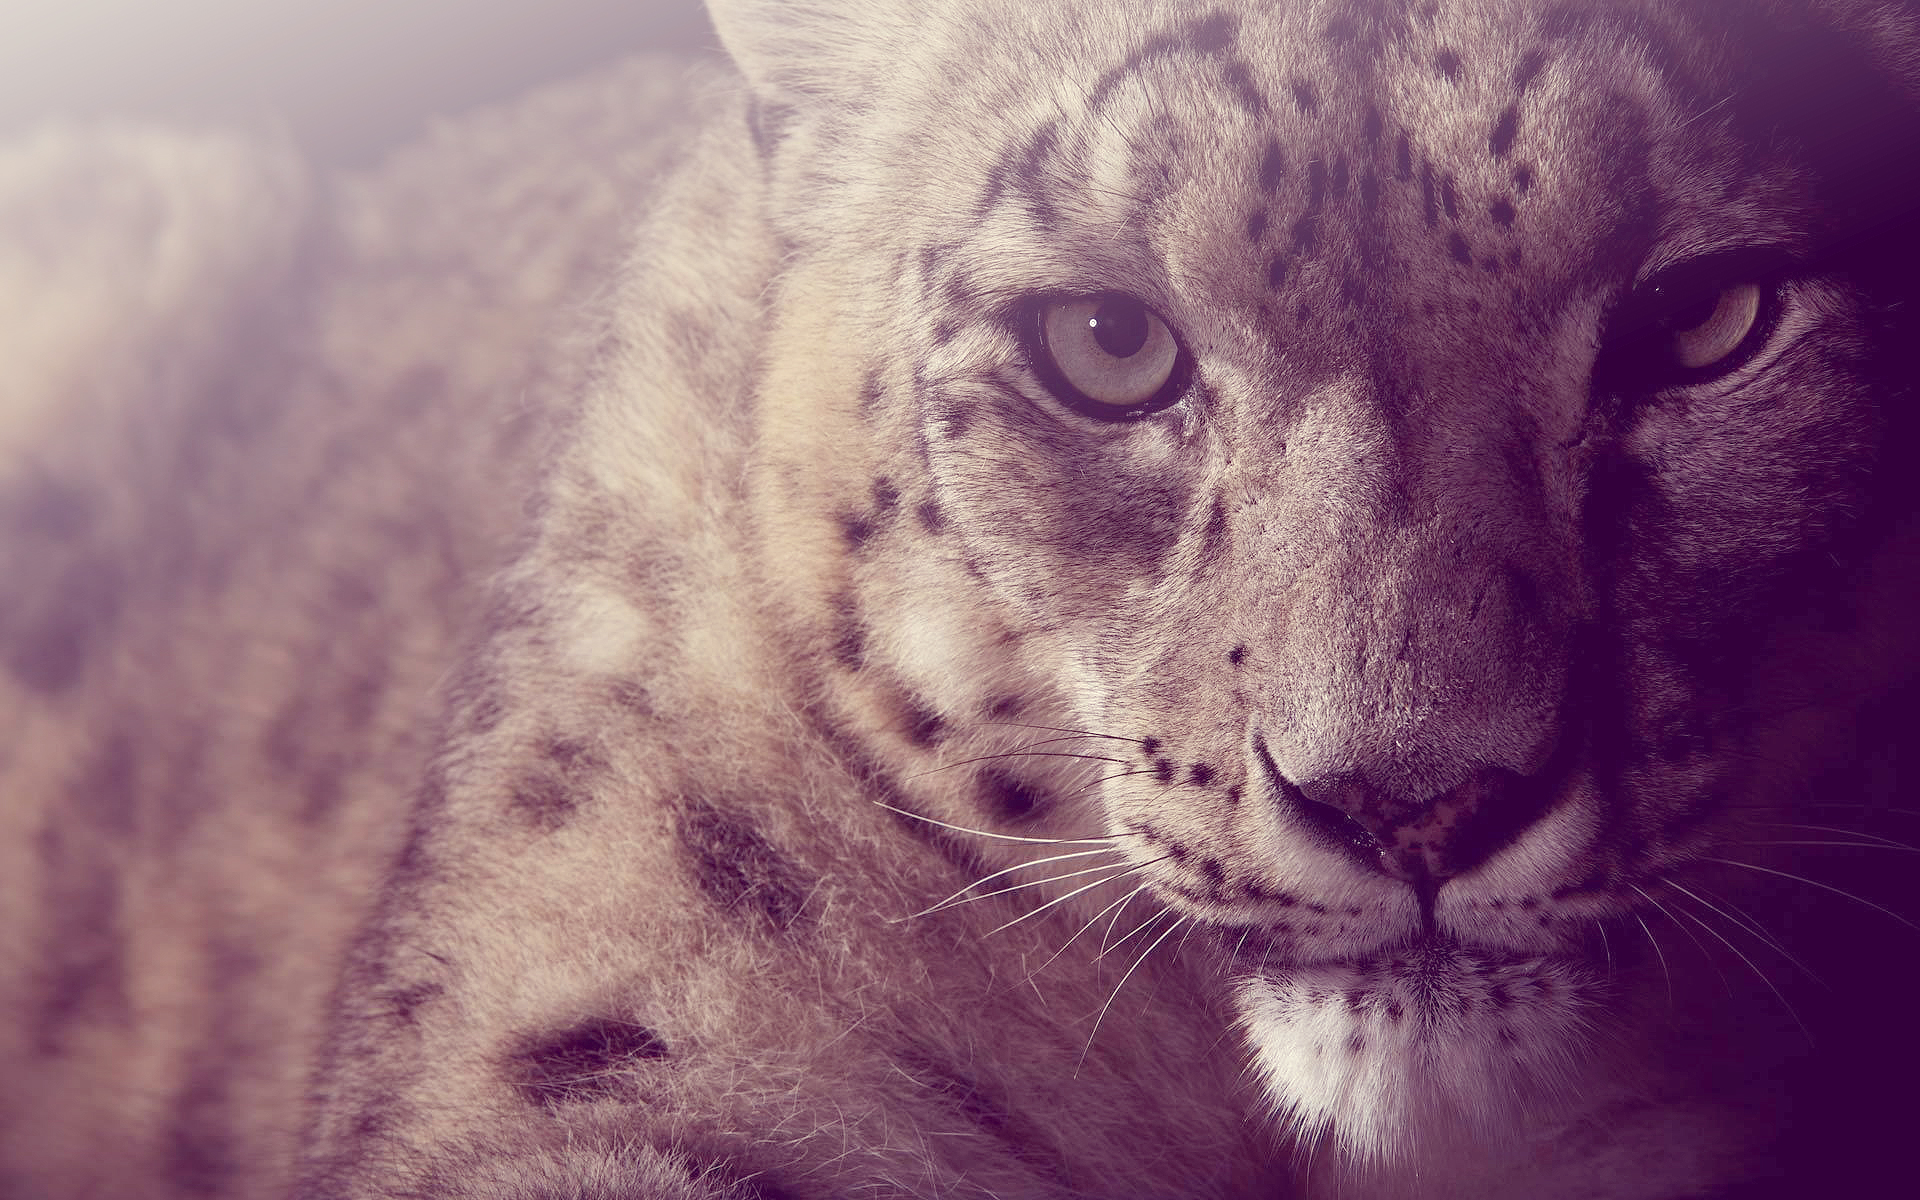 snow leopard wallpapers 30579 1920x1200 px ~ hdwallsource